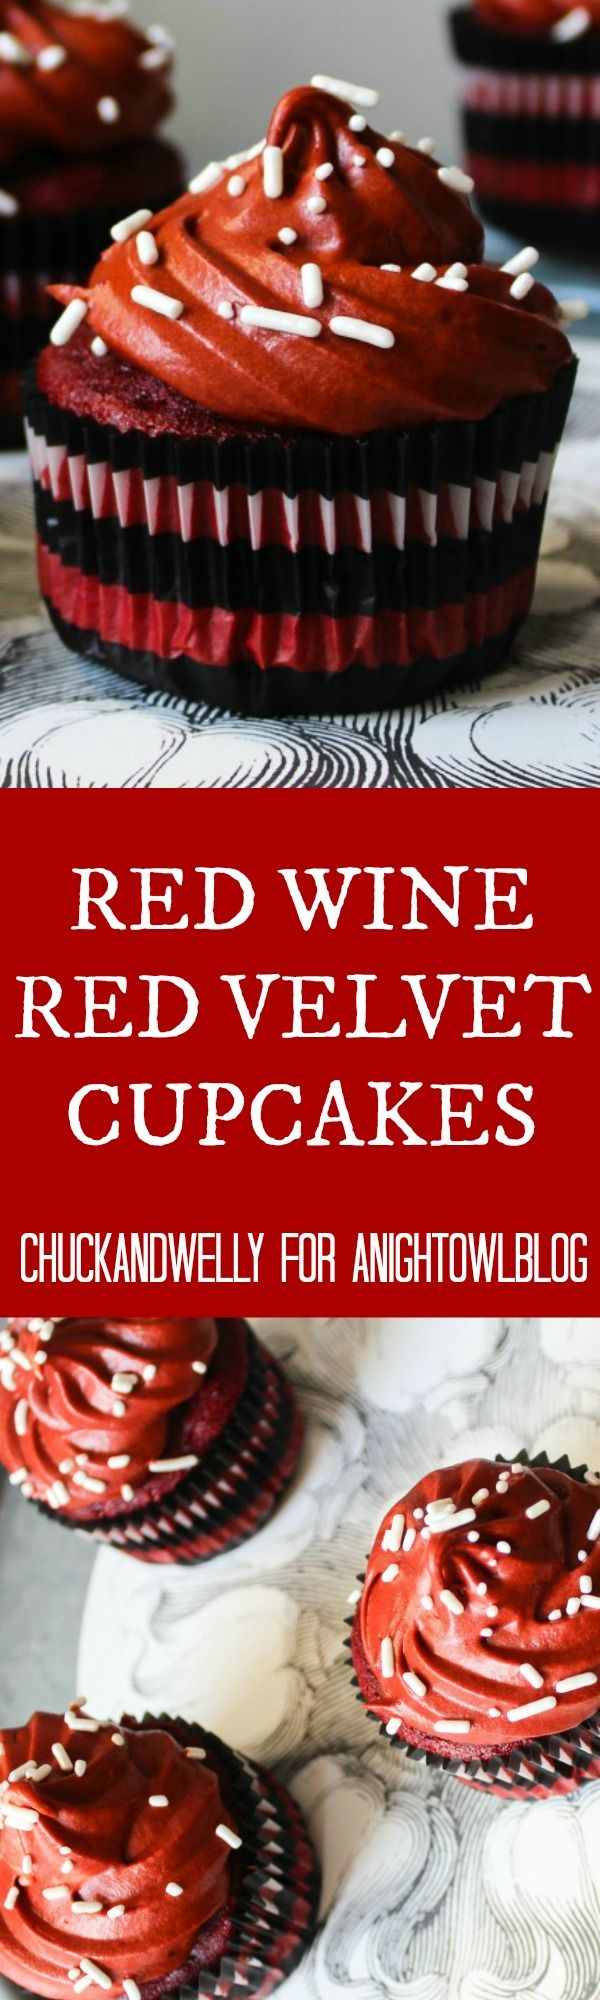 So, y'all, red velvet is, apparently, a thing. A real thing that brings out the crazy in people. I'm still unsure about it but I get requests for red velvet cupcakes pretty much daily and I'm a little over it. Not going to lie, my regular red velvet cupcakes are pretty legit. (That's saying something …